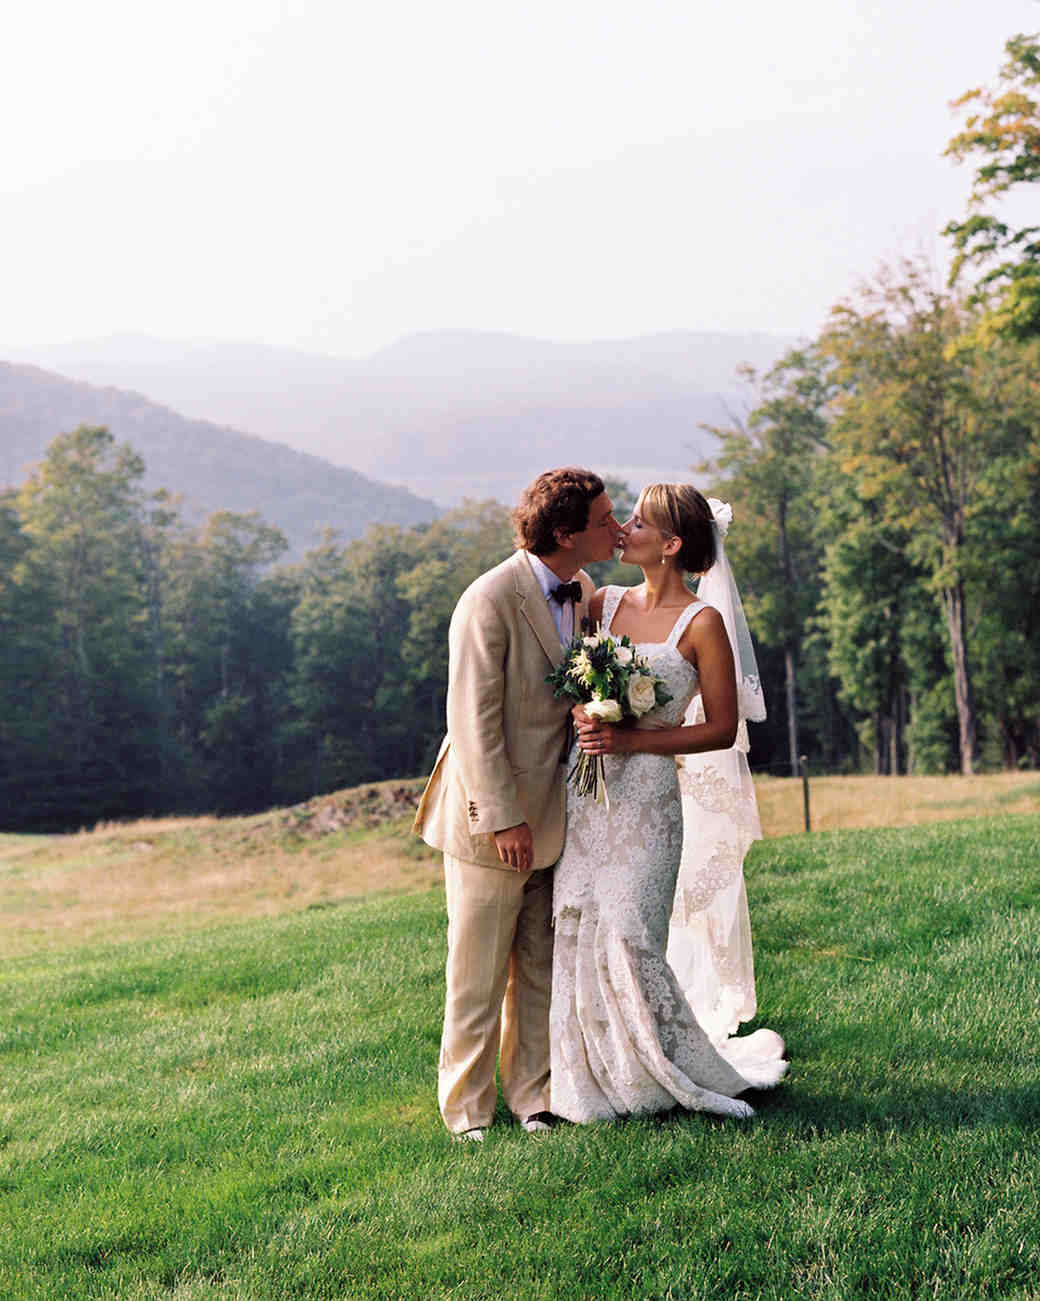 from Rhett gay marriage destinations in vt